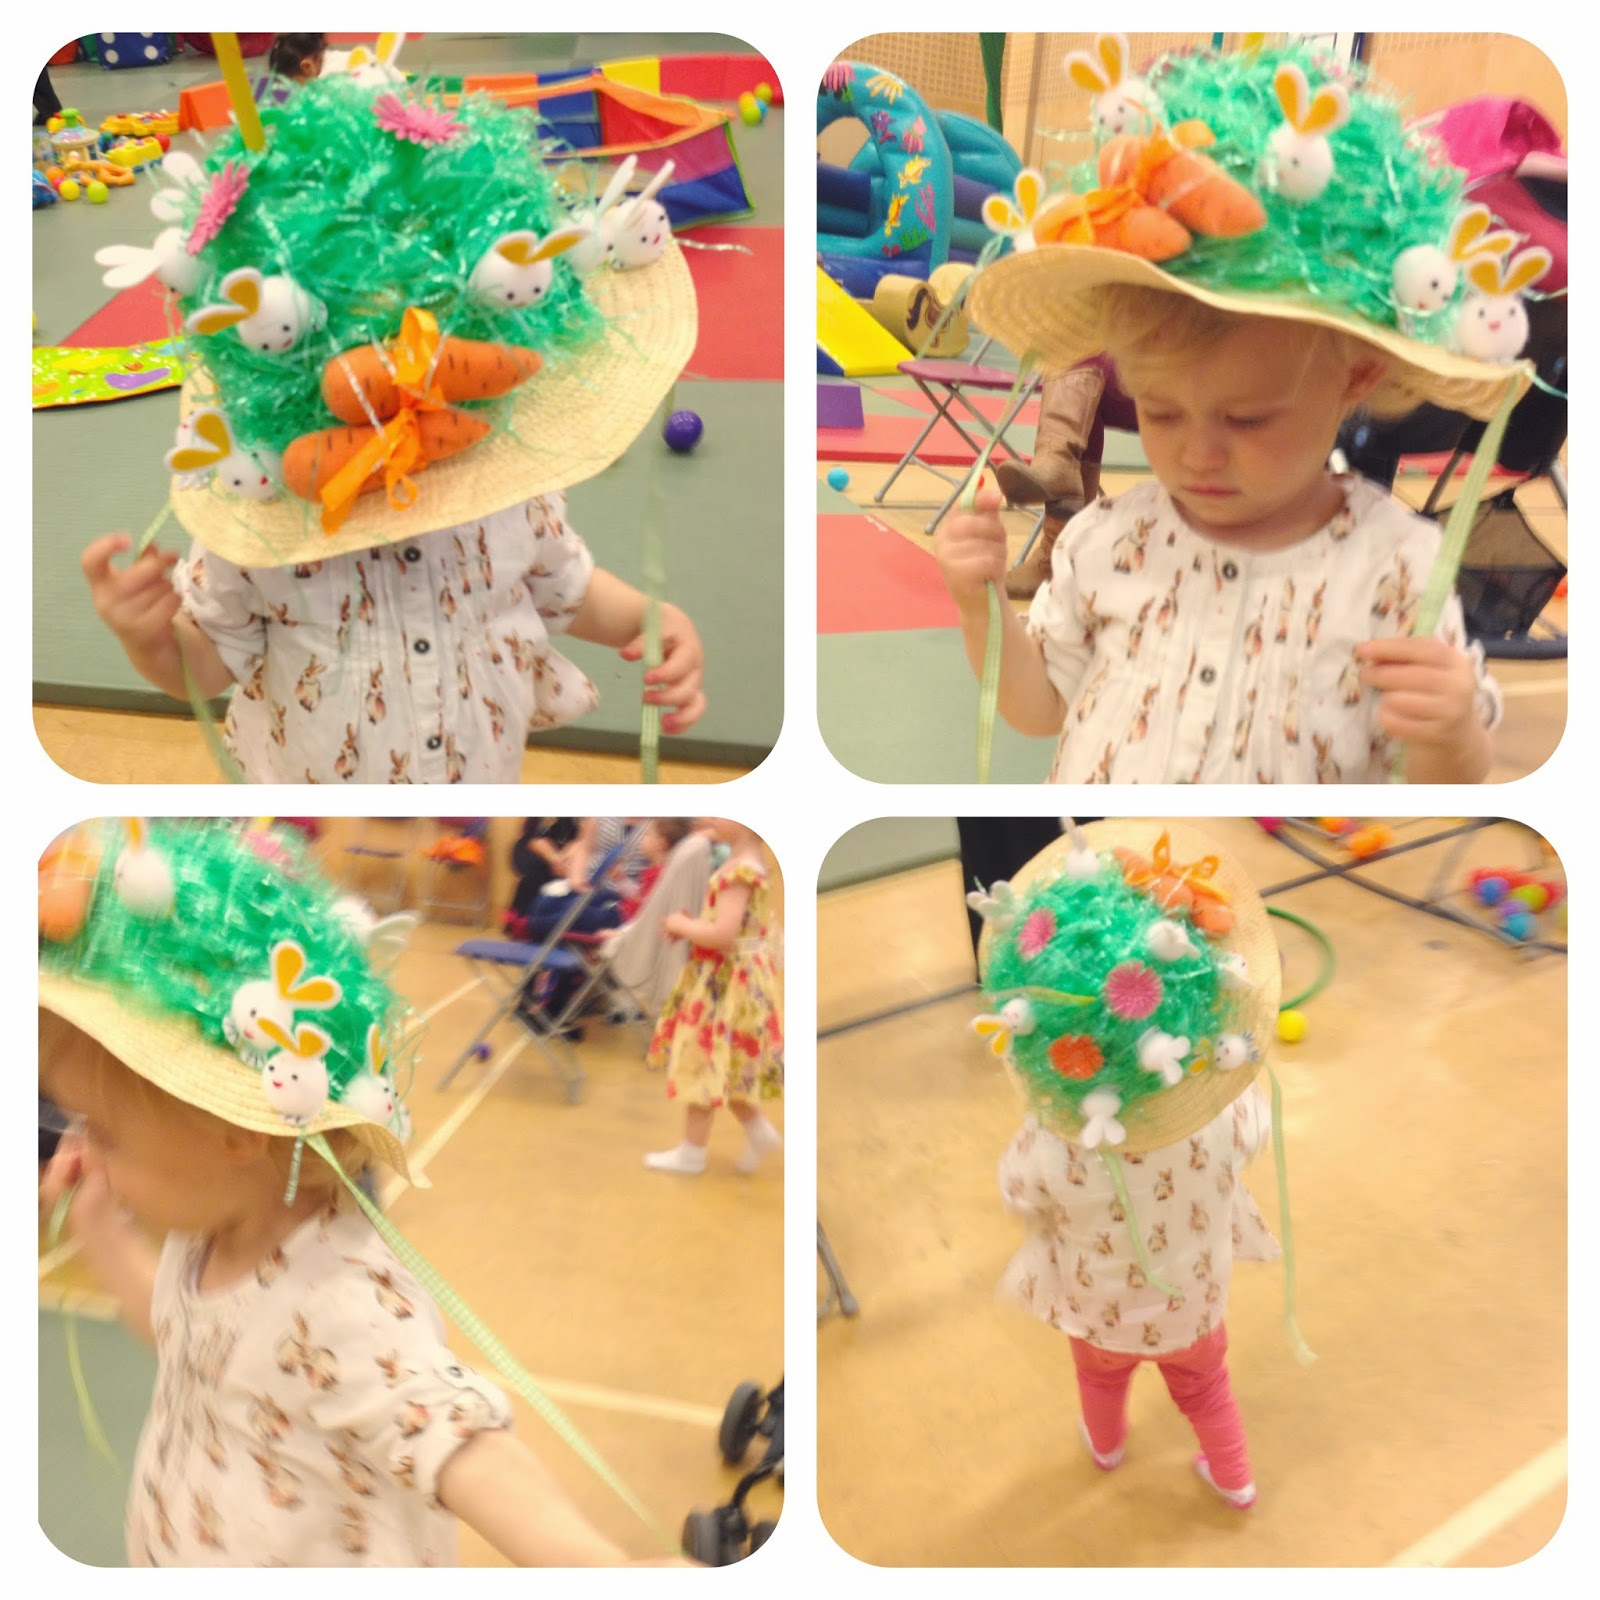 Pibterest Cast Ideas For Kids: Welcome To #mamamondays… Muddy Puddles, Easter Bonnets And